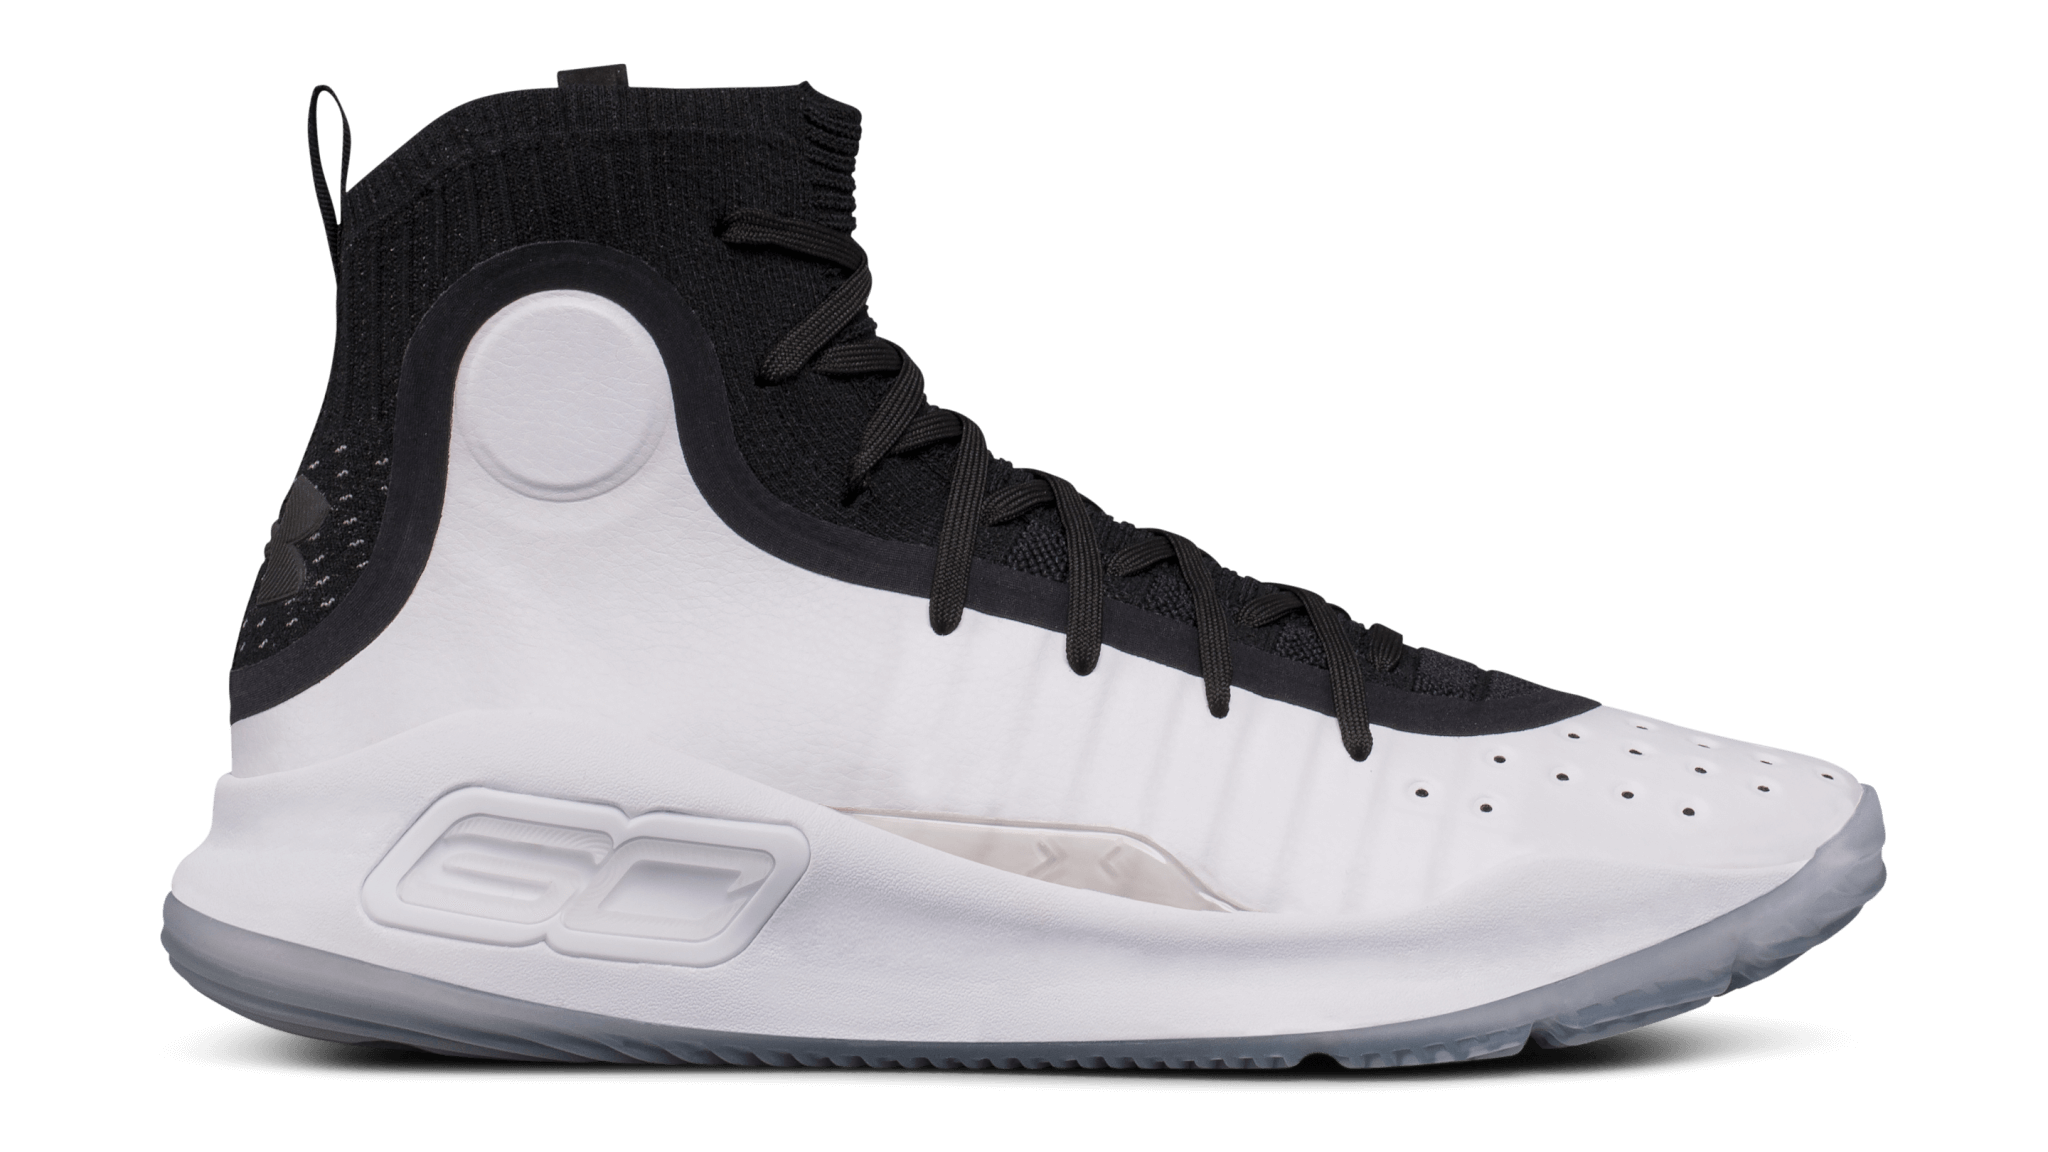 3197c0f91a8ec Under Armour Curry 4 Performance Review